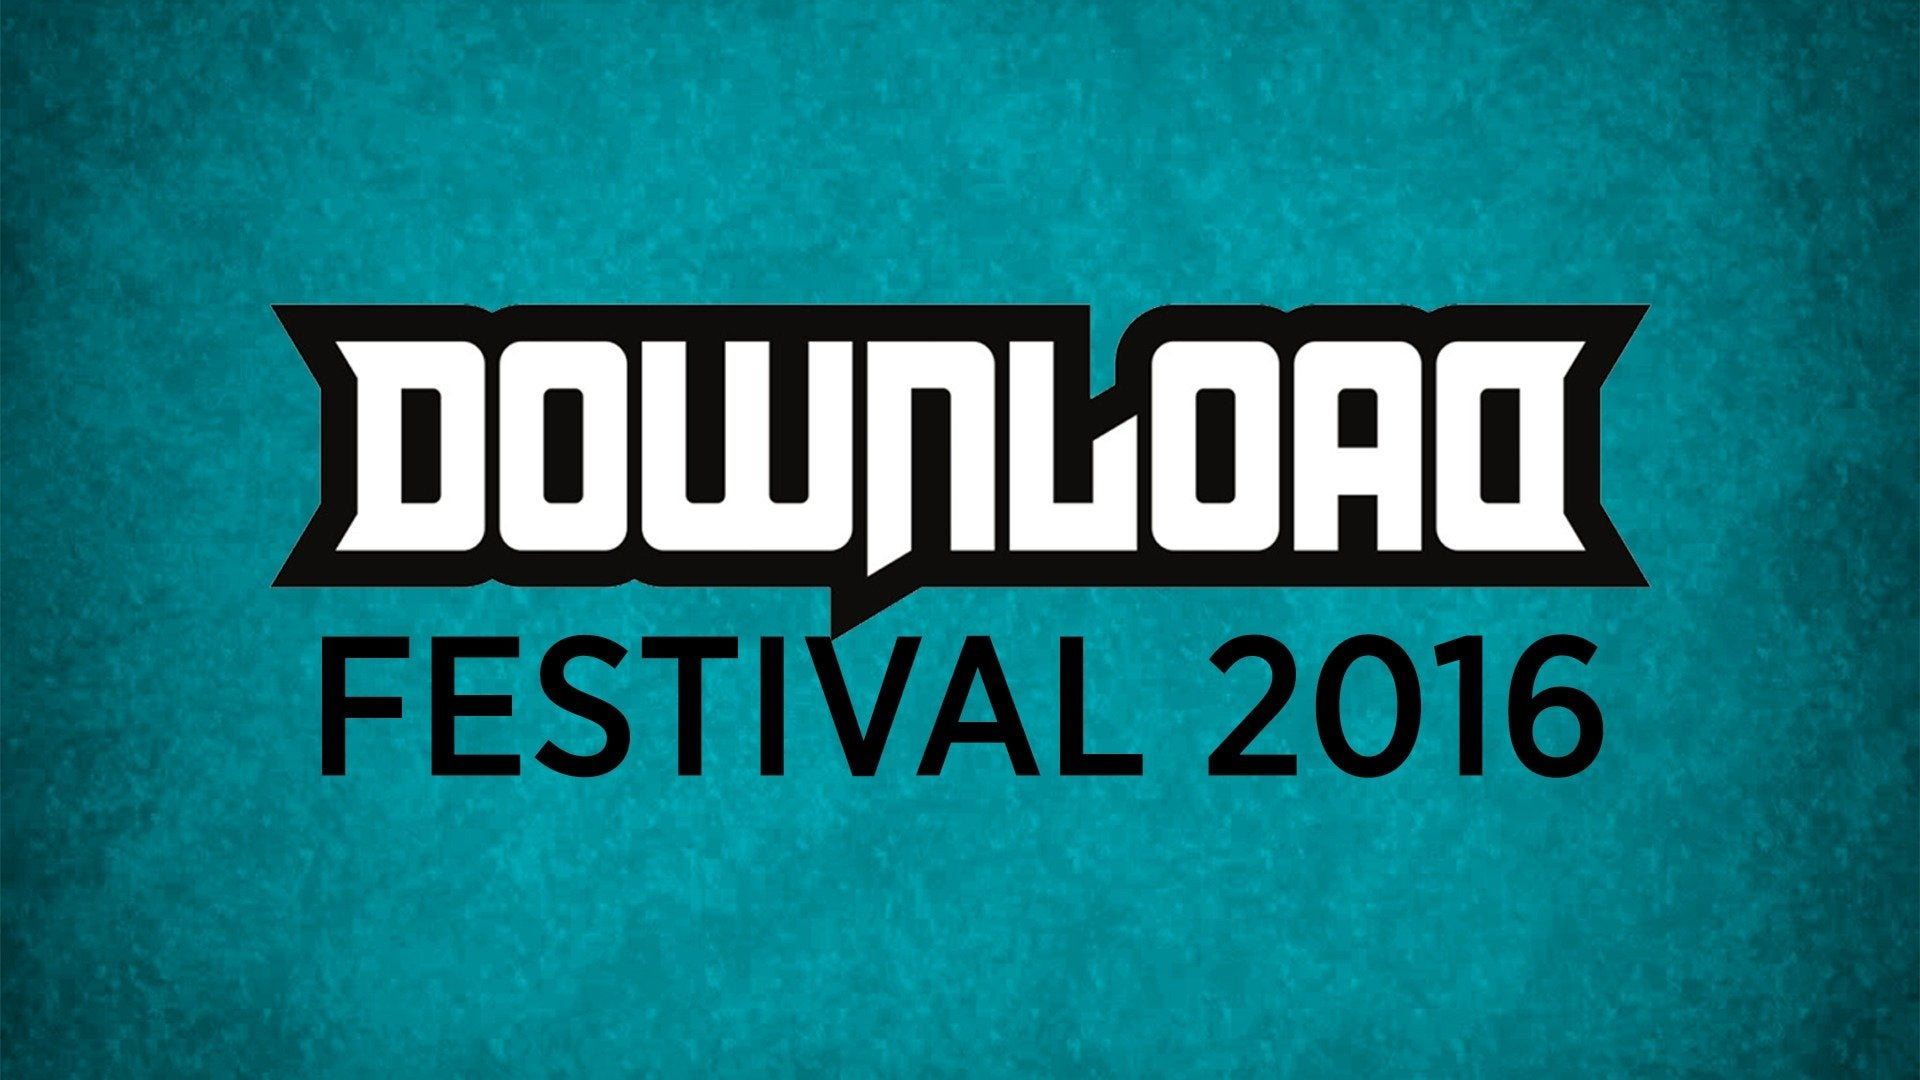 Download Festival 2016